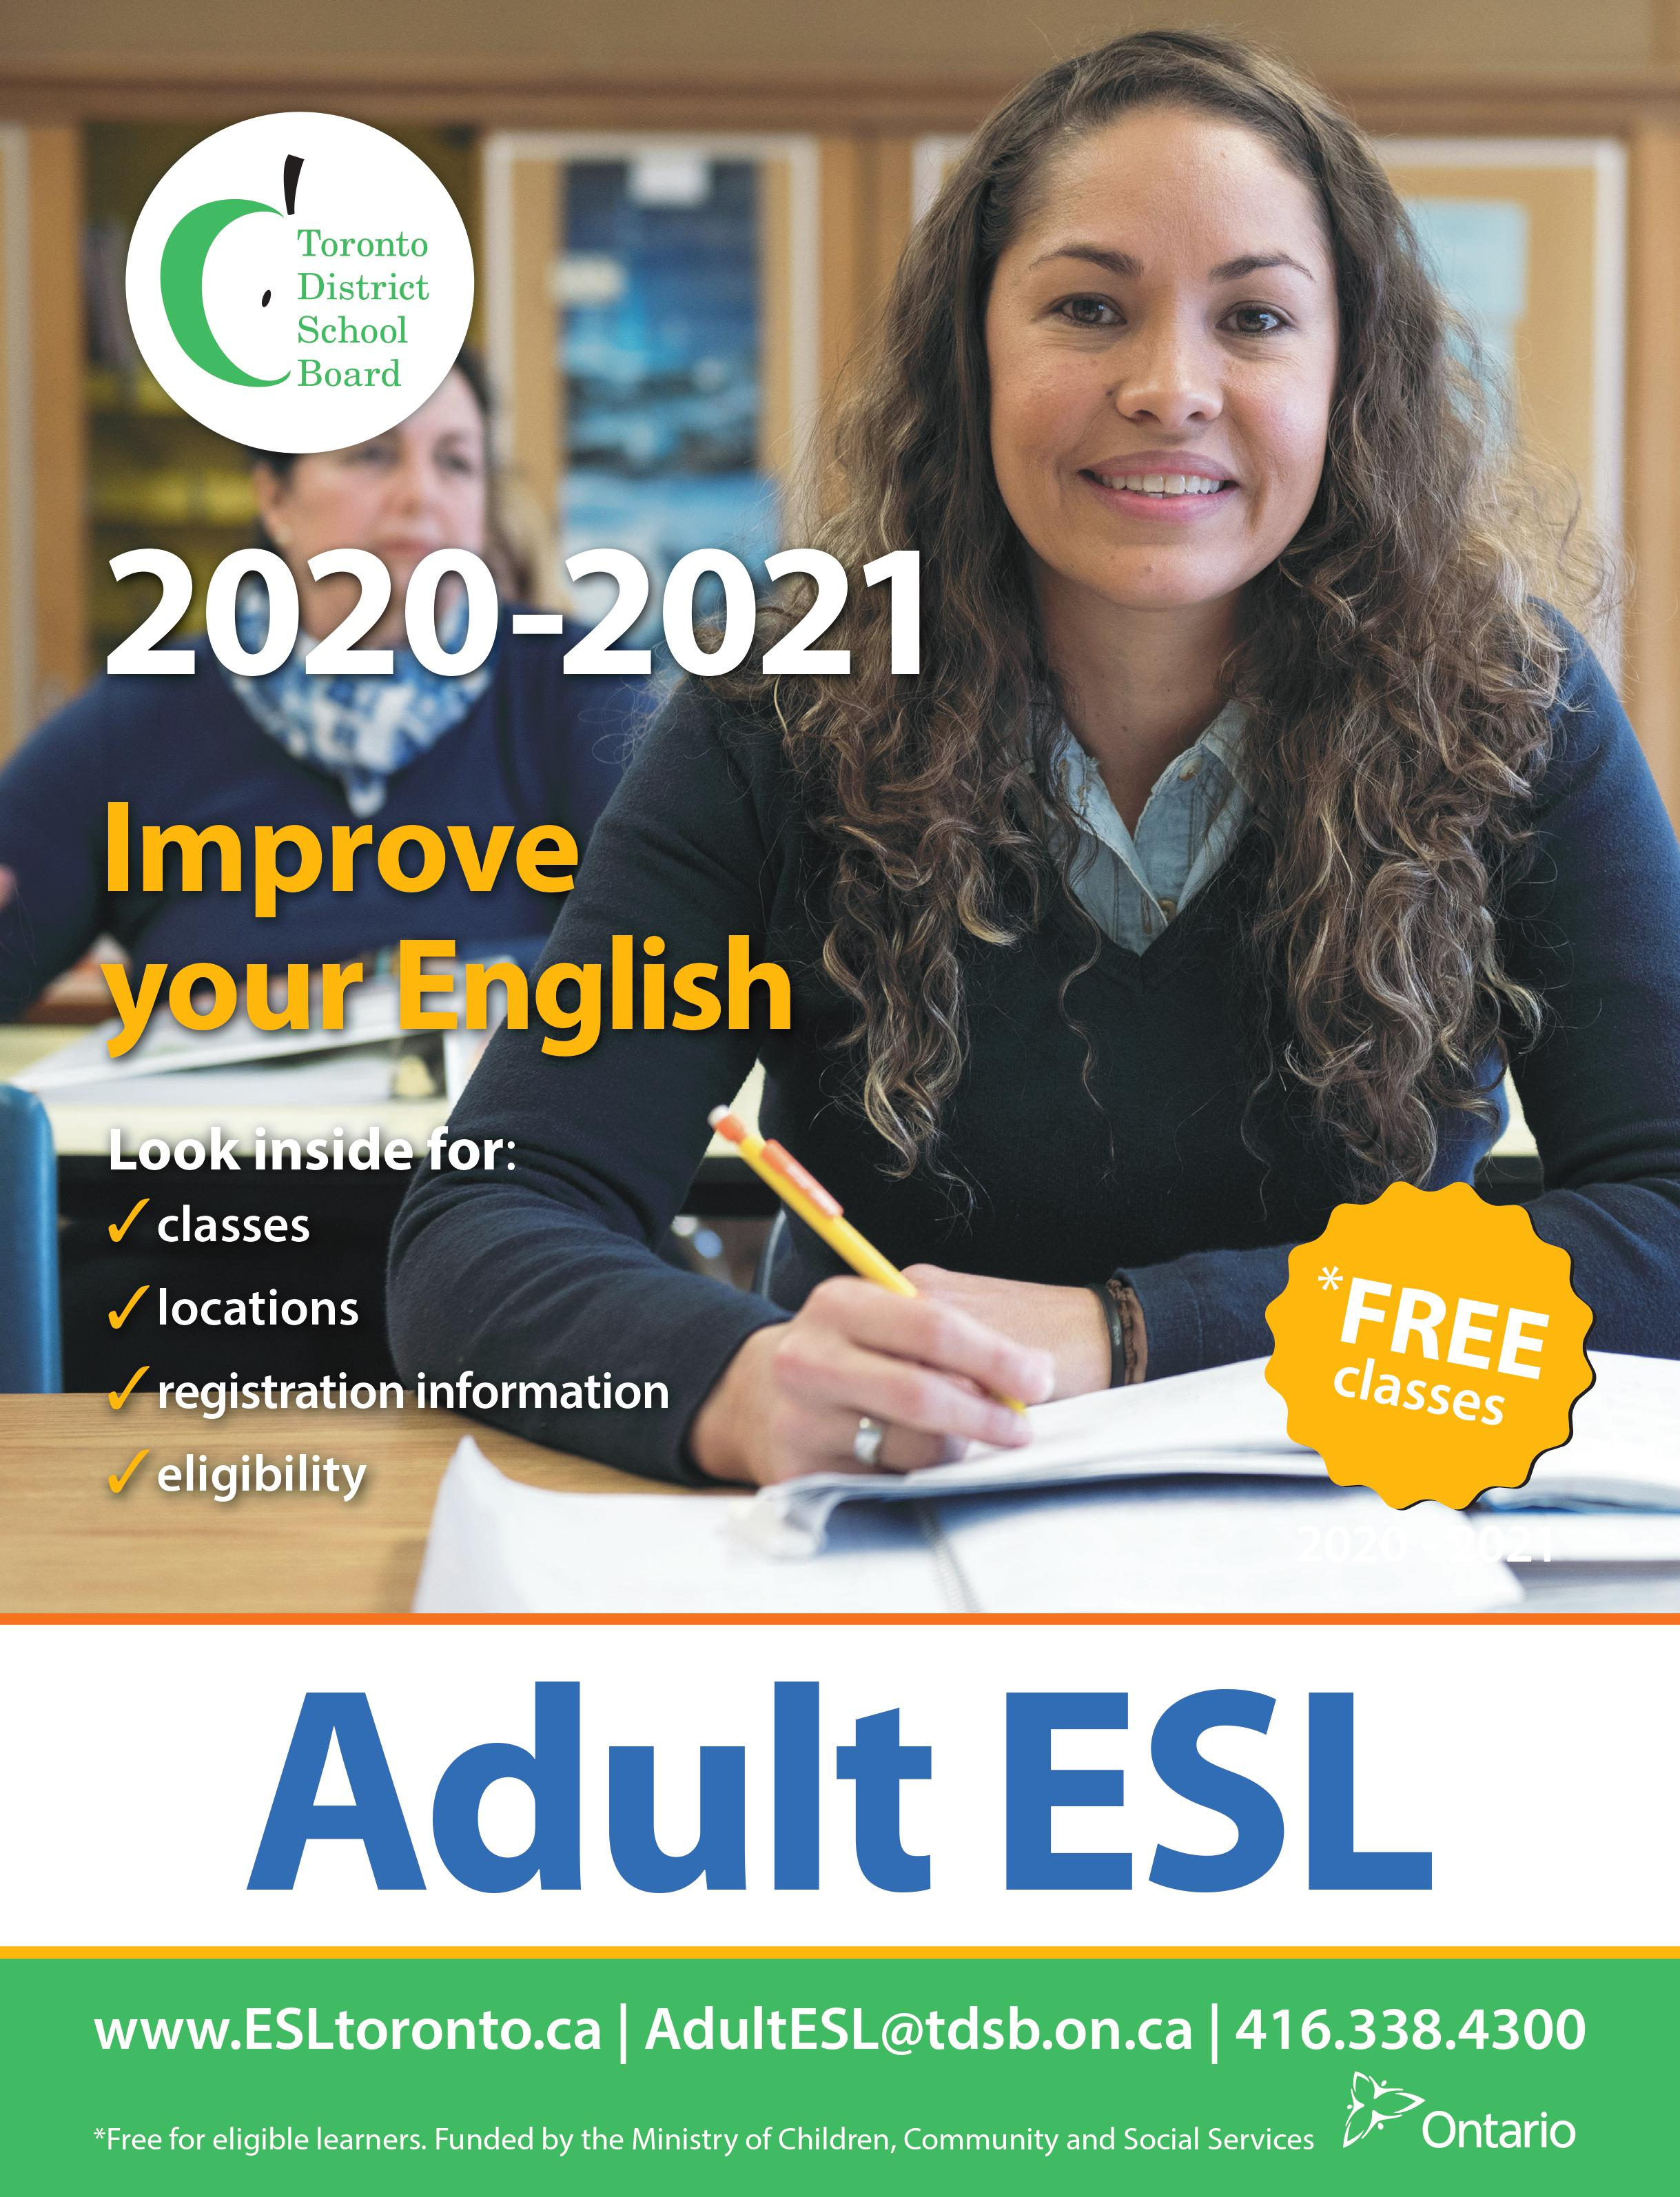 2020-2021 Brochure for Adult ESL Programs